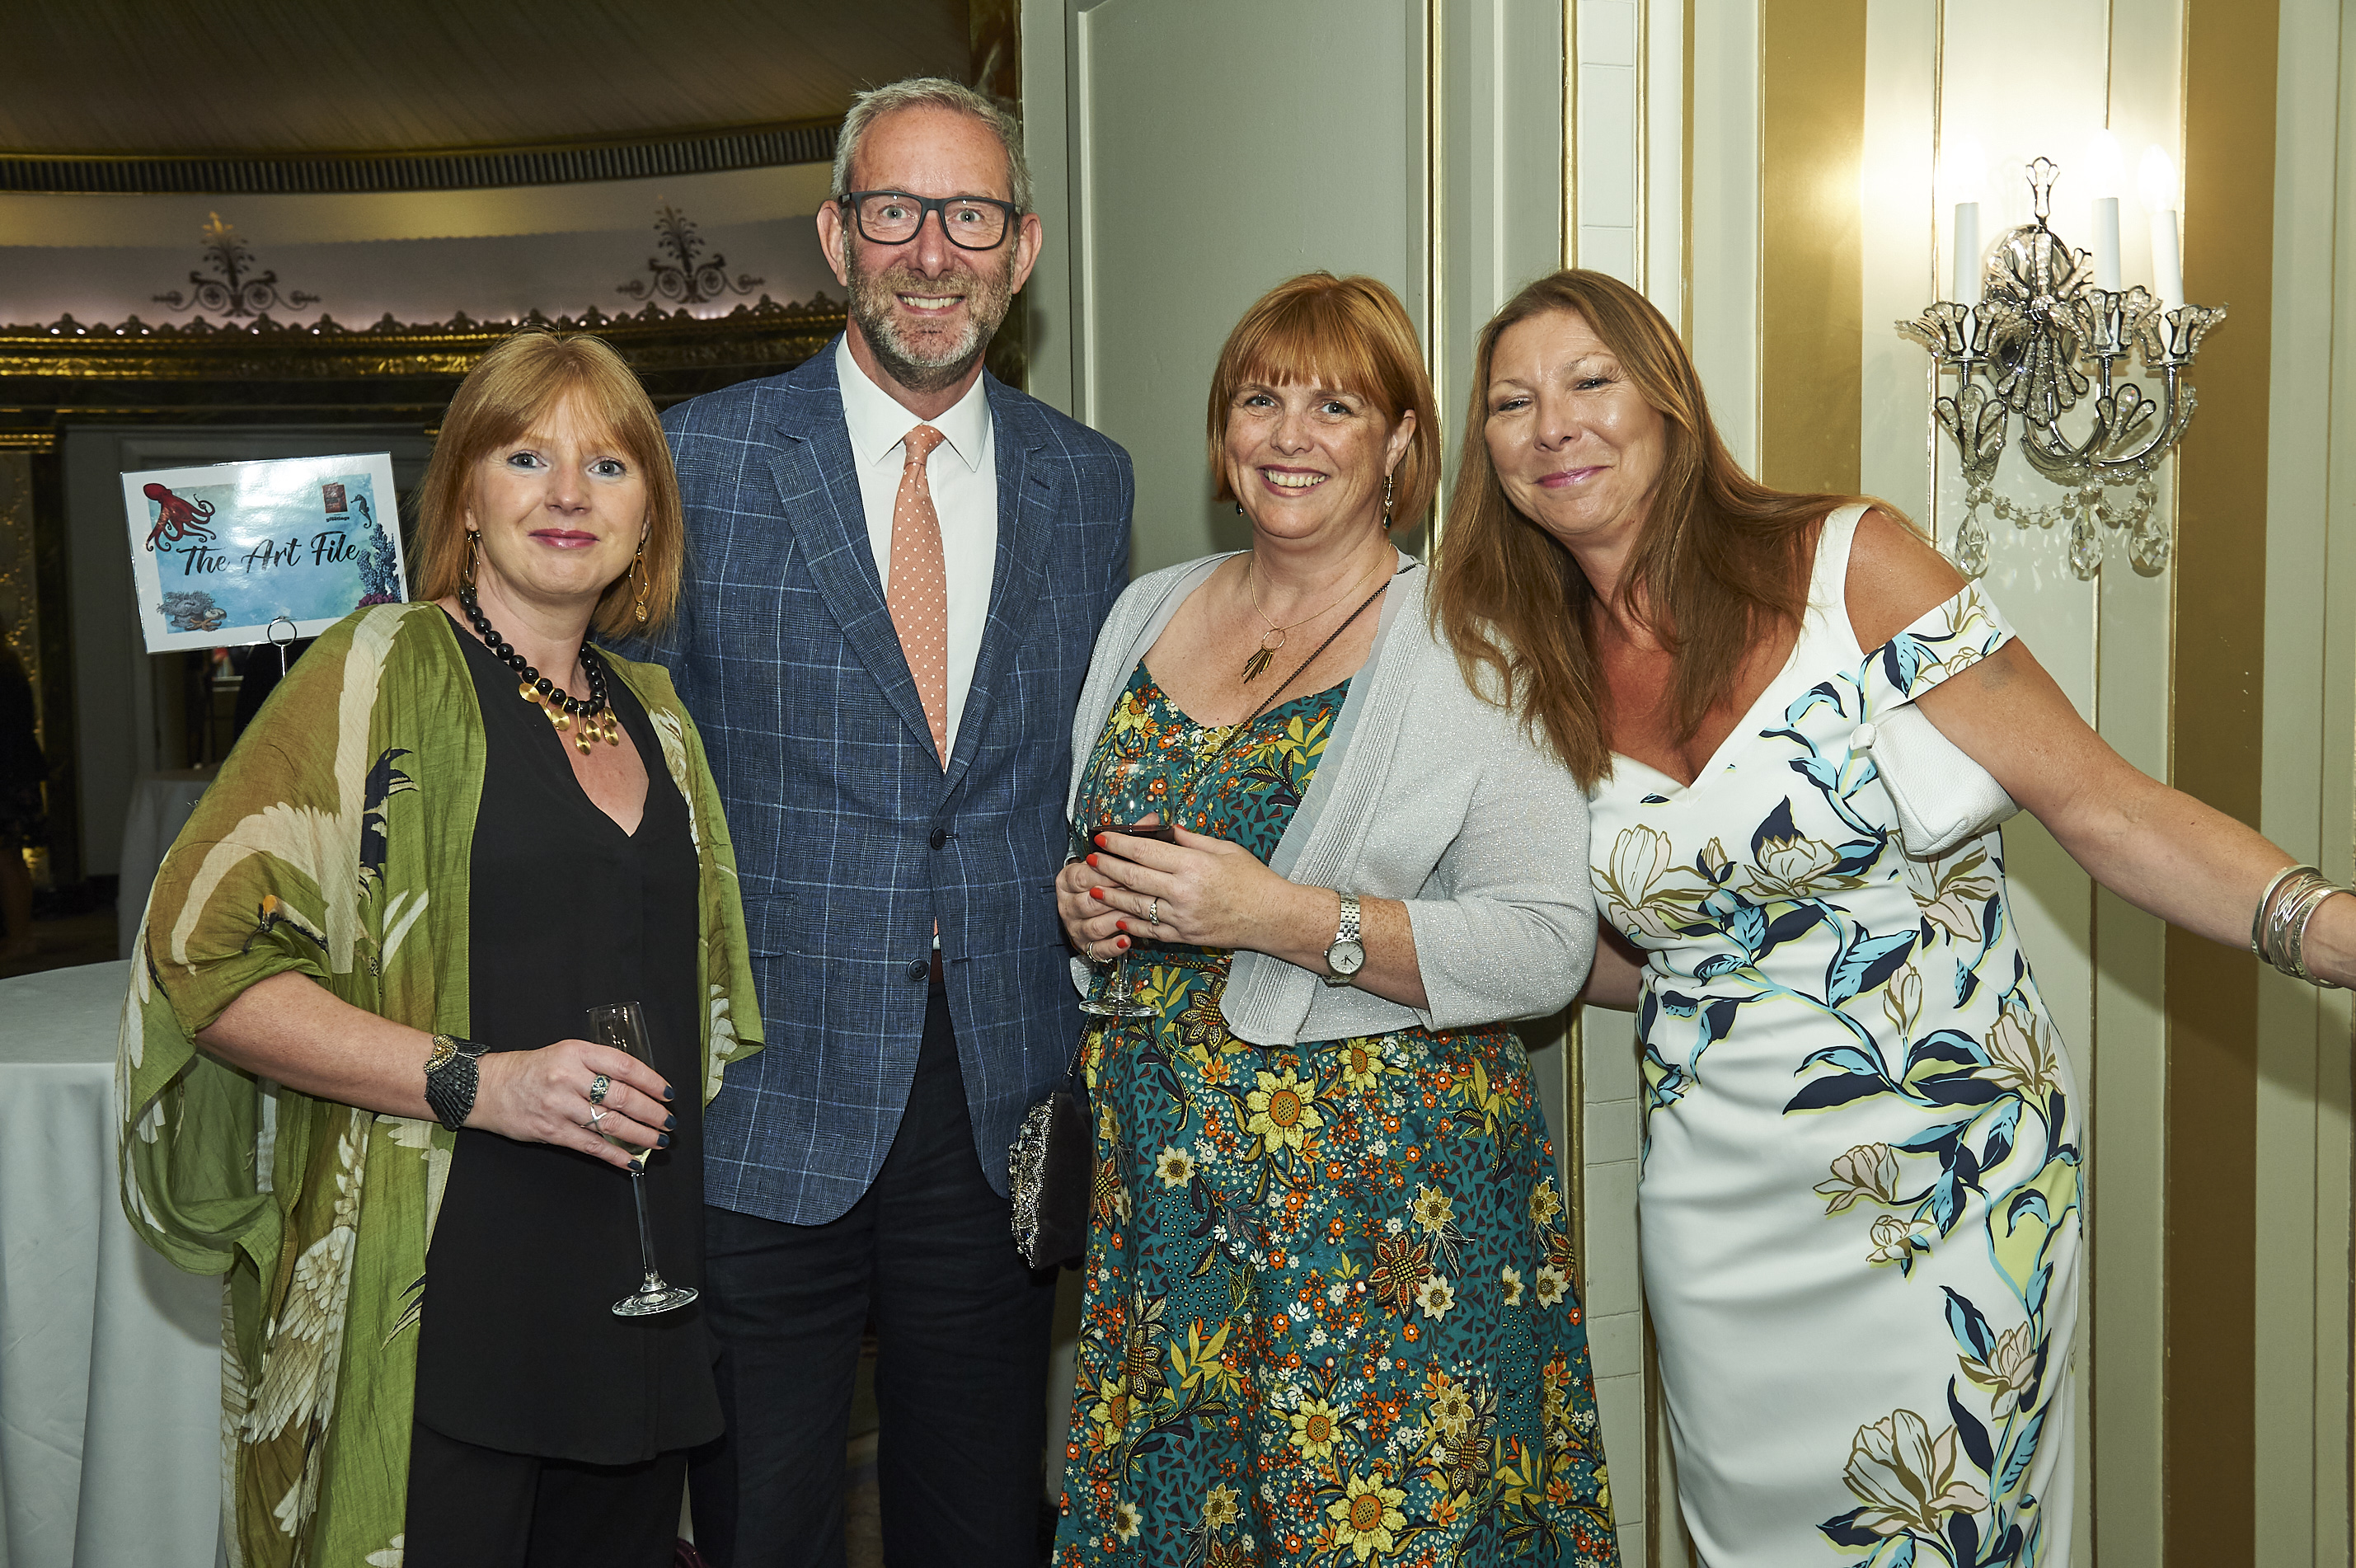 Above: Jo Bannister (right) with Mooch's Sandra O'Connell and Evelyn O'Flaherty, a customer in Ealing, with The Art File's md Ged Mace at last July's Retas awards event.